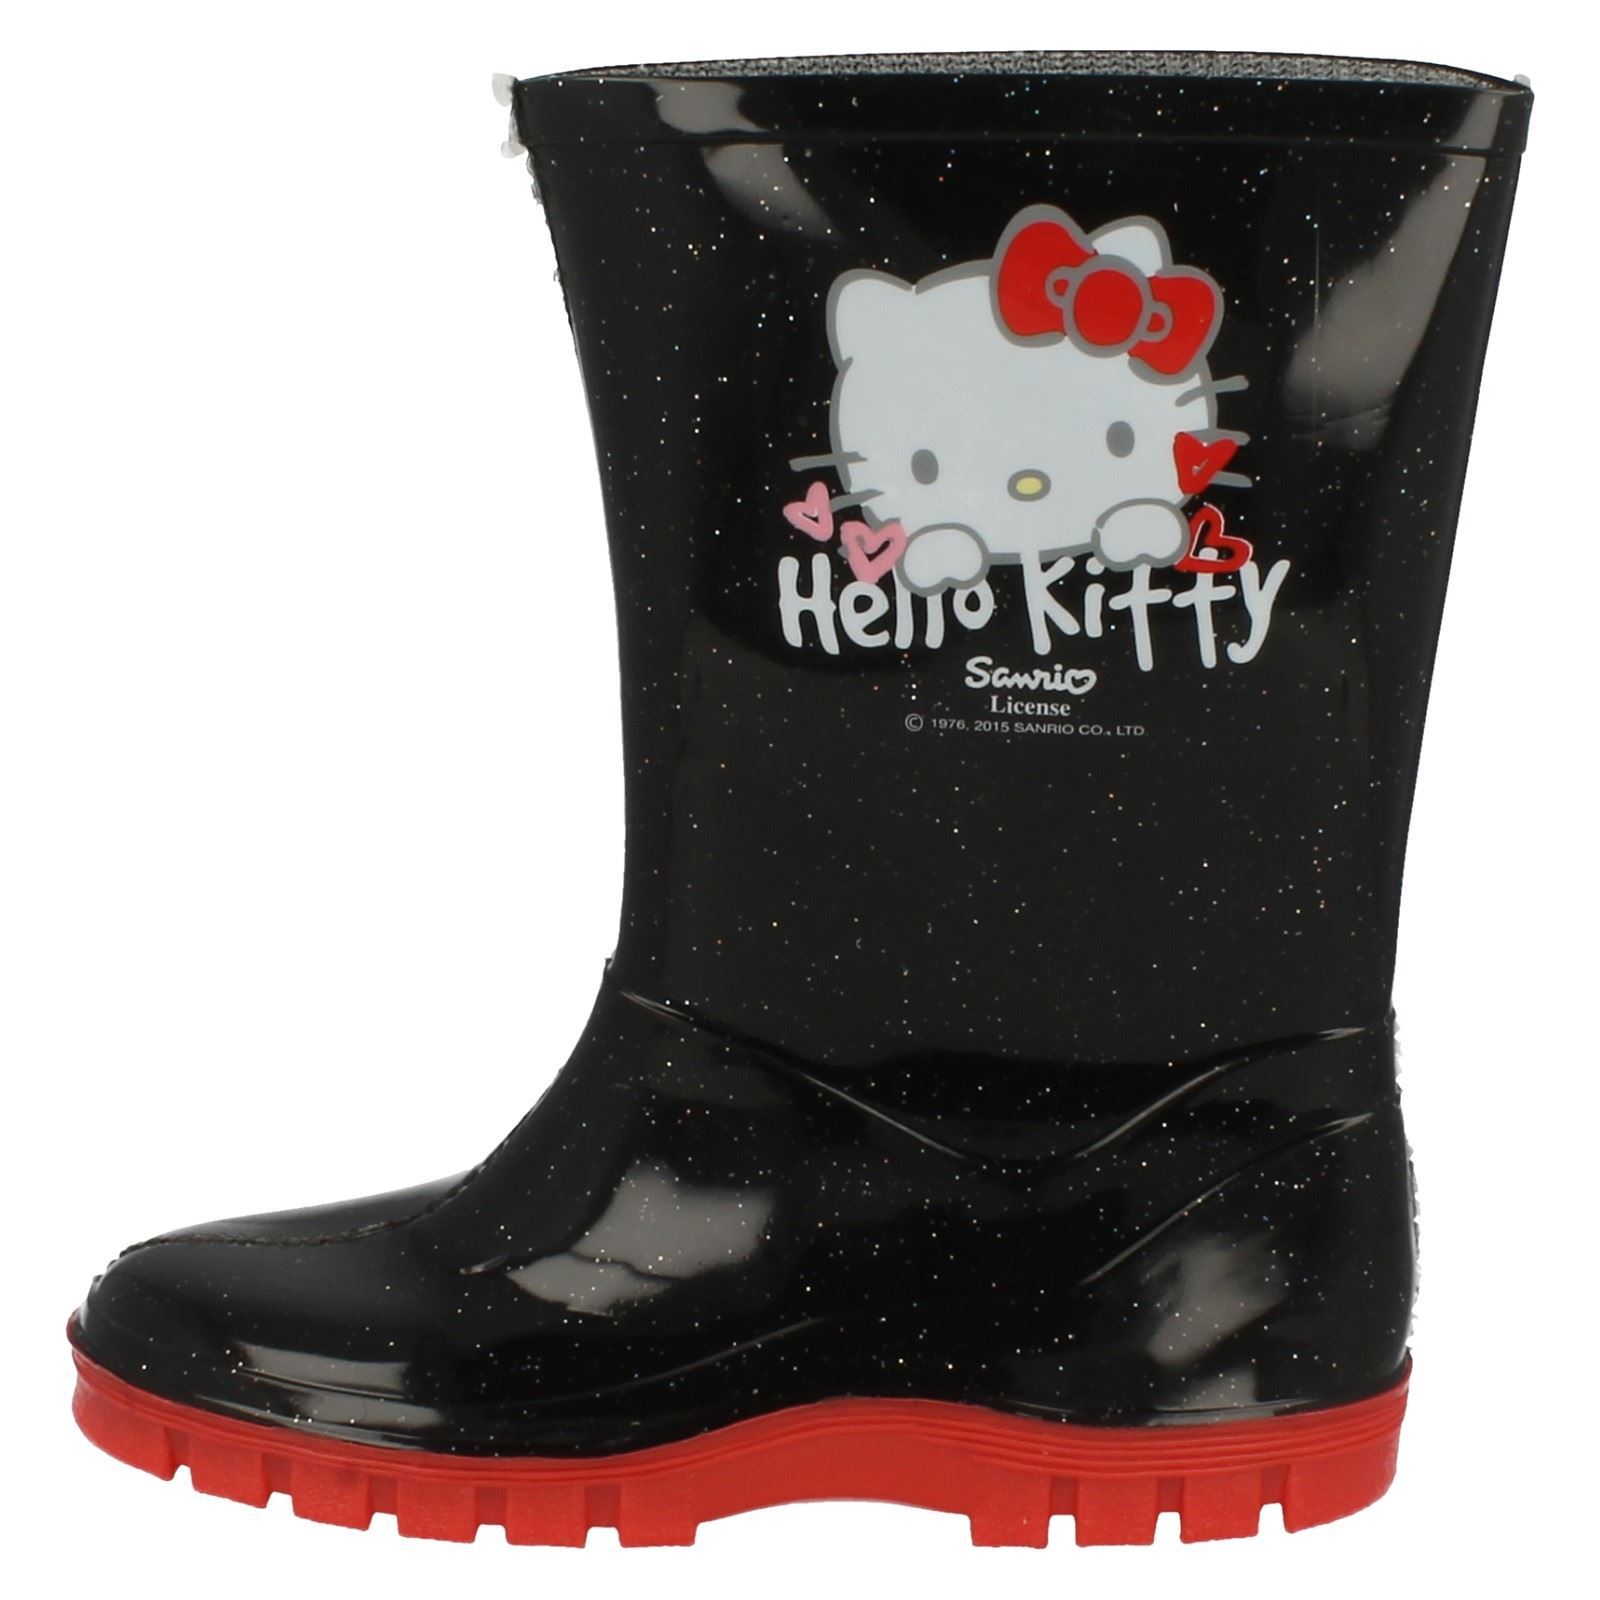 Chicas HELLO KITTY Wellingtons